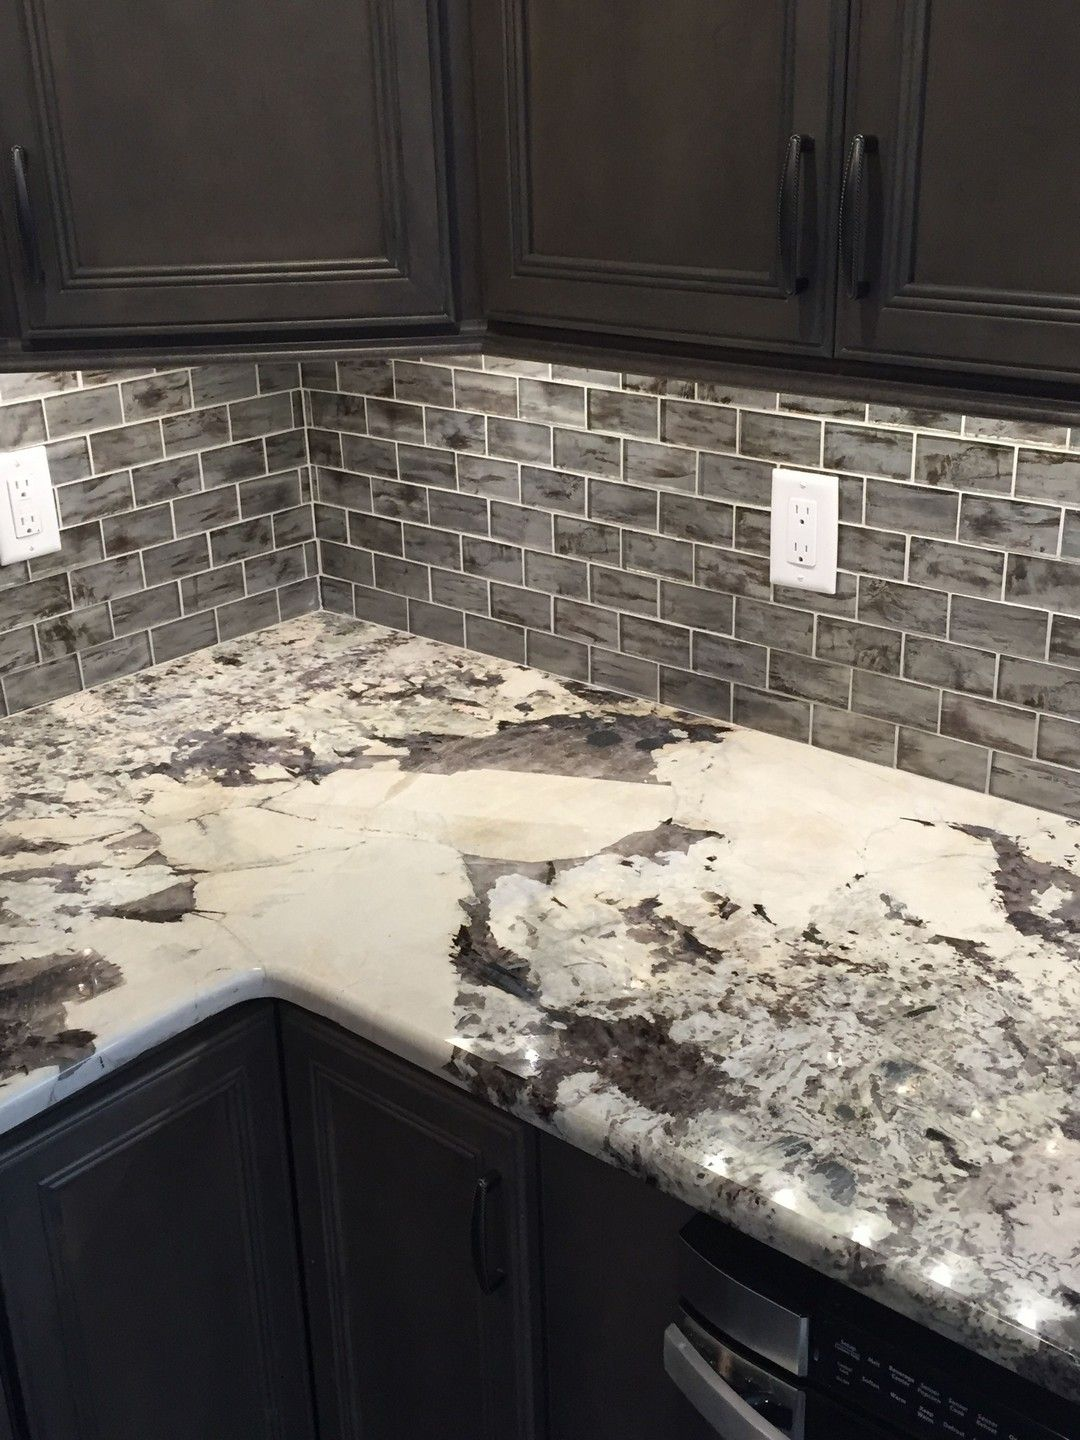 35 Gorgeous Kitchen Backsplash Ideas With Granite 8 In 2020 Outdoor Kitchen Countertops Kitchen Remodeling Projects Kitchen Countertops